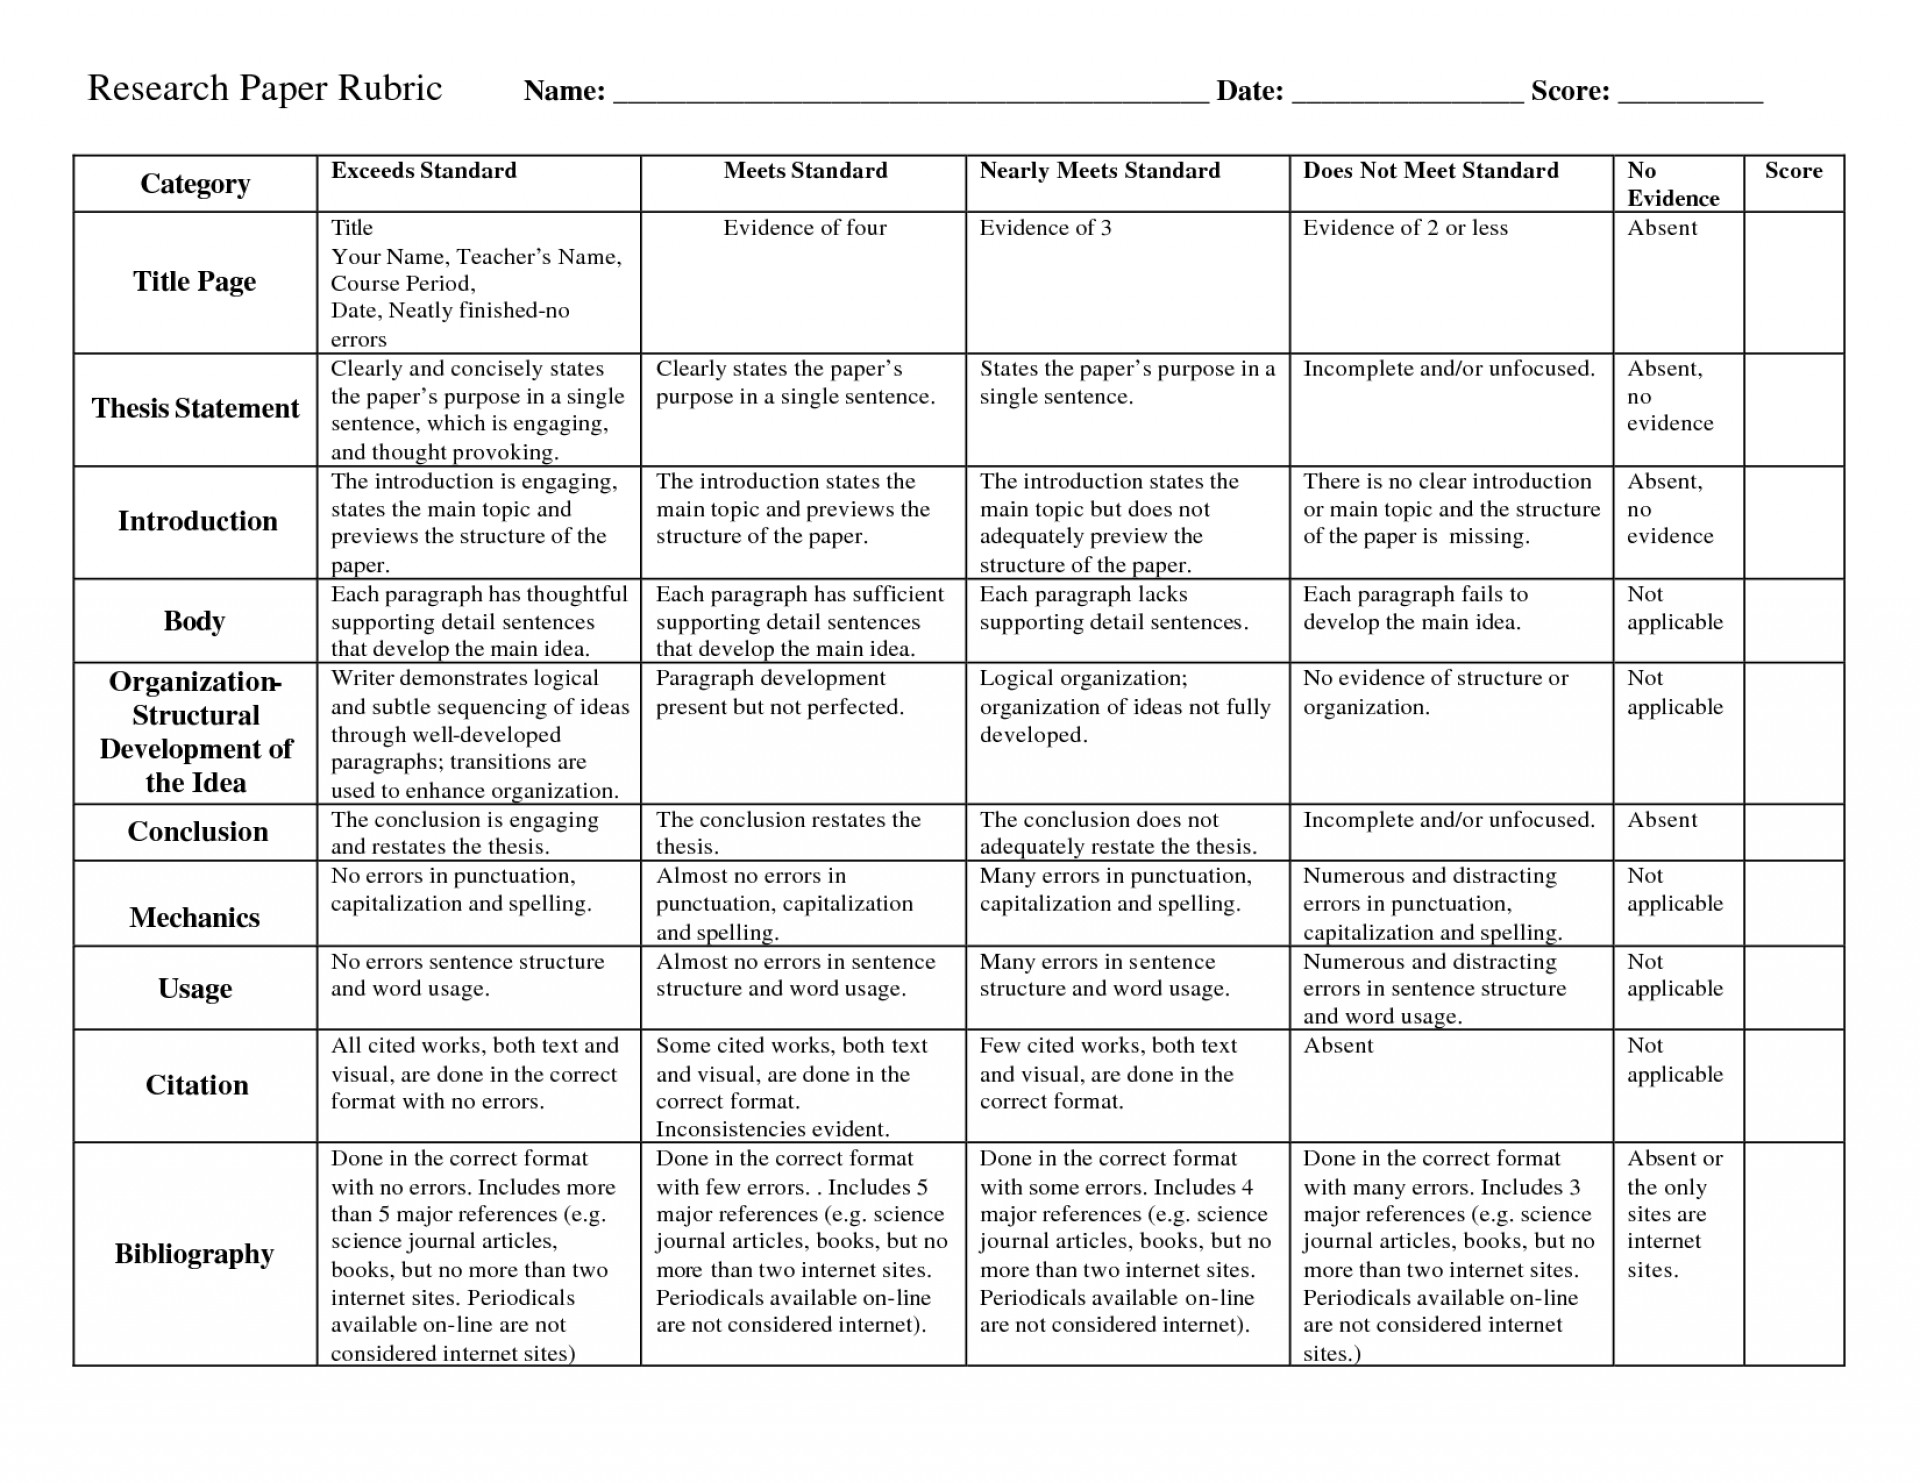 007 Research Paper Career Rubric Best Ideas Of For Scope Work Template Epic High School Social Studies Wondrous 1920